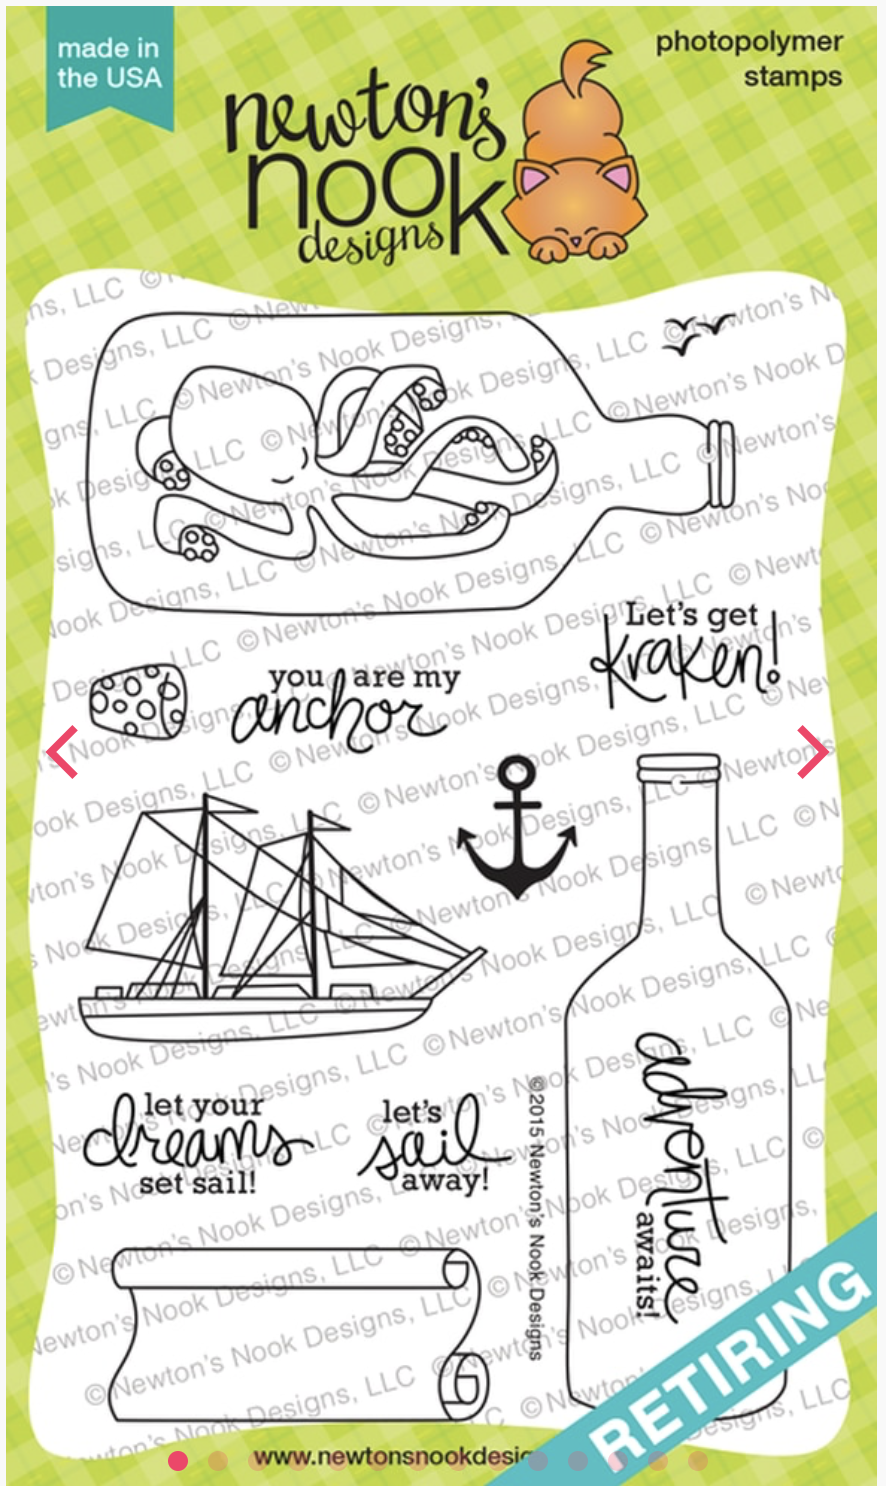 Newton's Nook 4x6 Stamp Messge in a Bottle